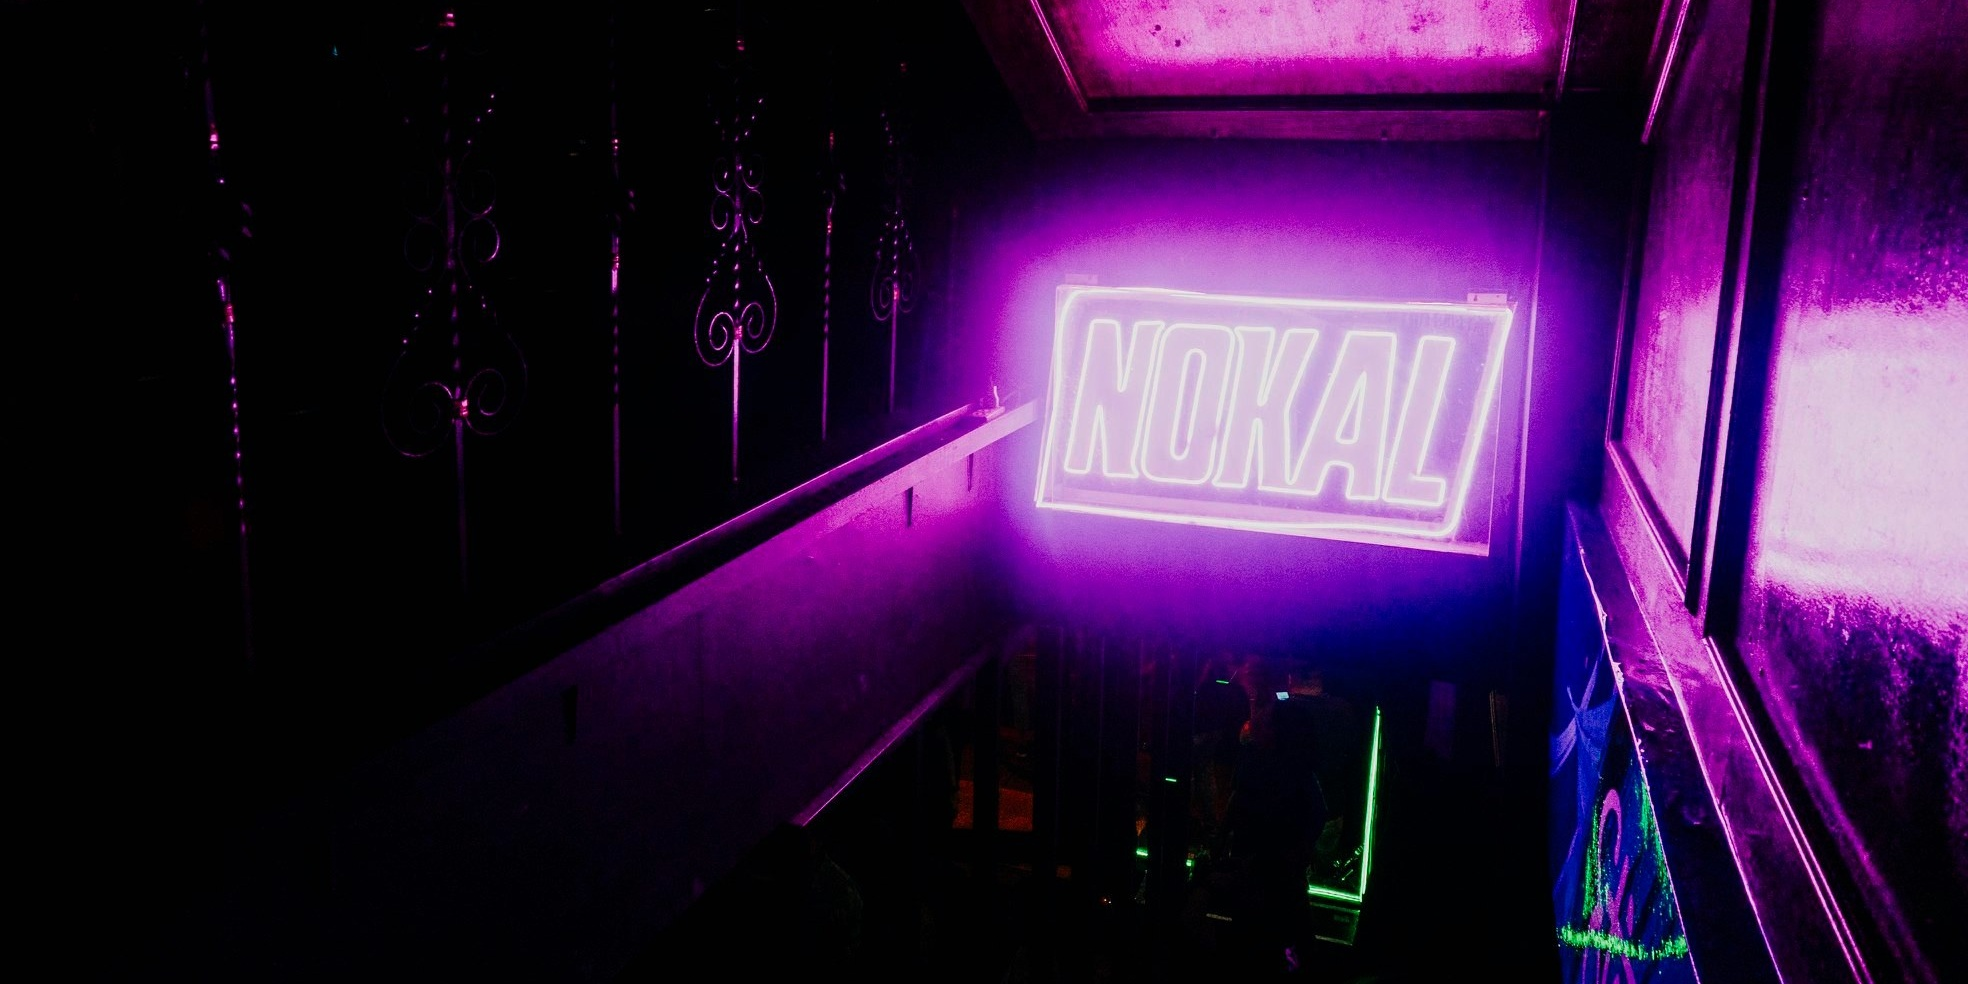 """""""NoKal will live on and definitely make a comeback once the timing is right."""" Poblacion hotspot closes down amidst COVID-19 crisis"""